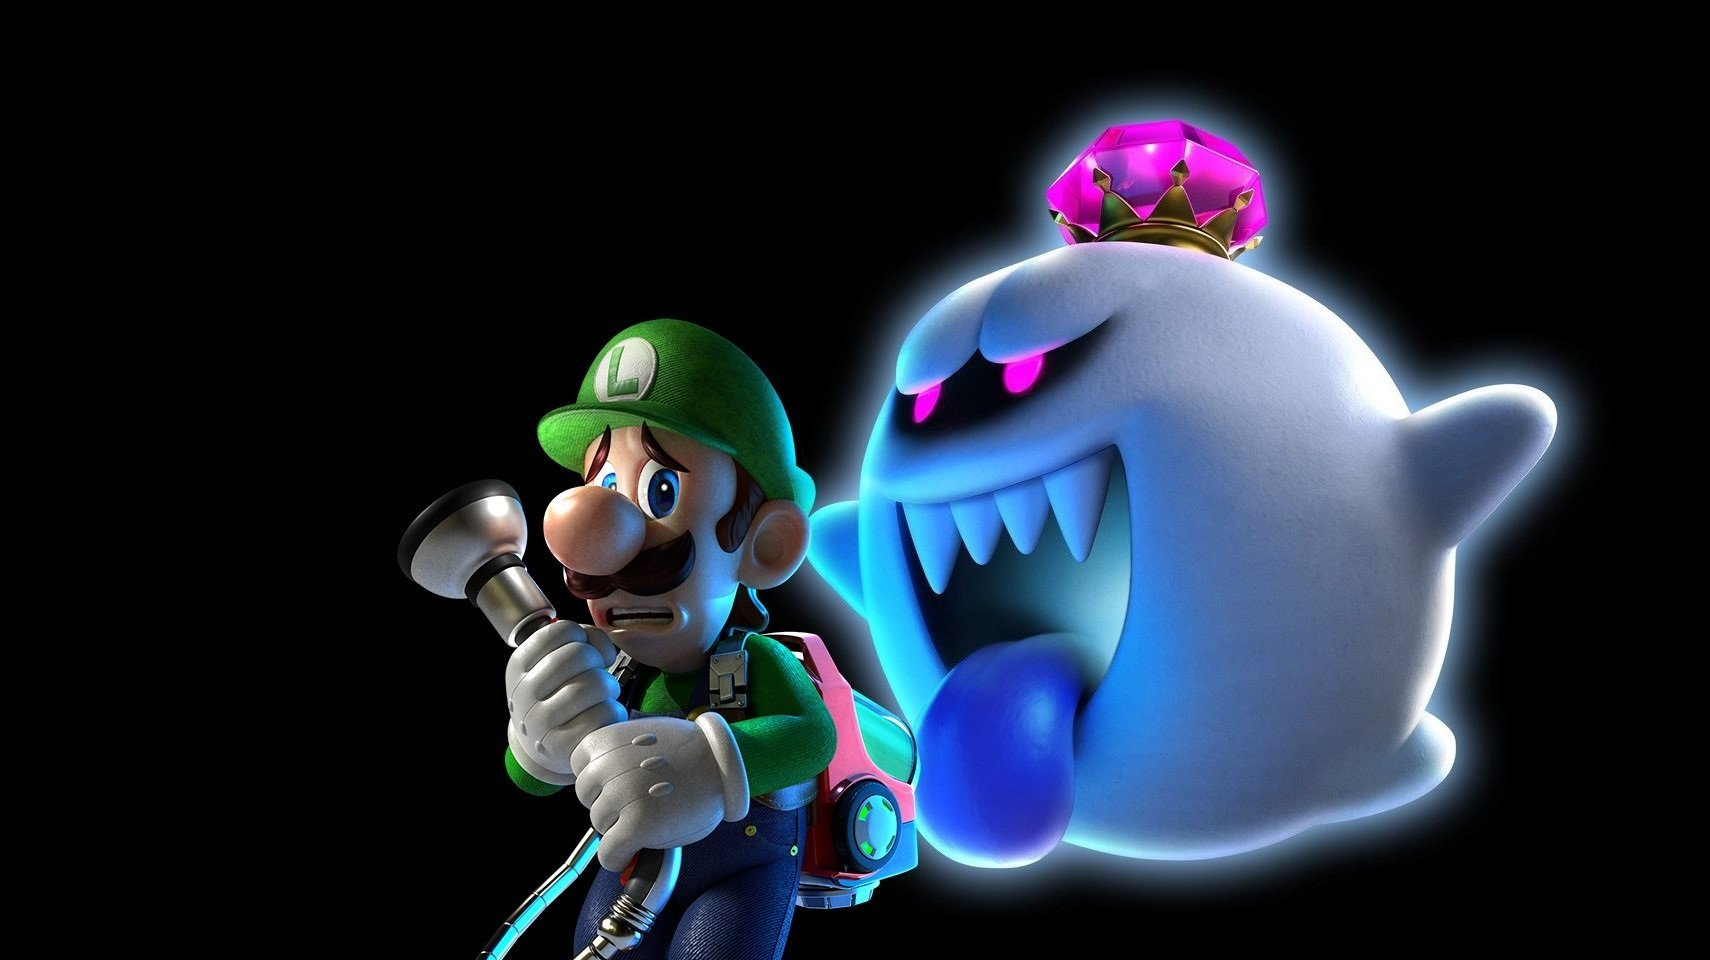 Luigi S Mansion 3 How To Catch Boos And Where To Find Them